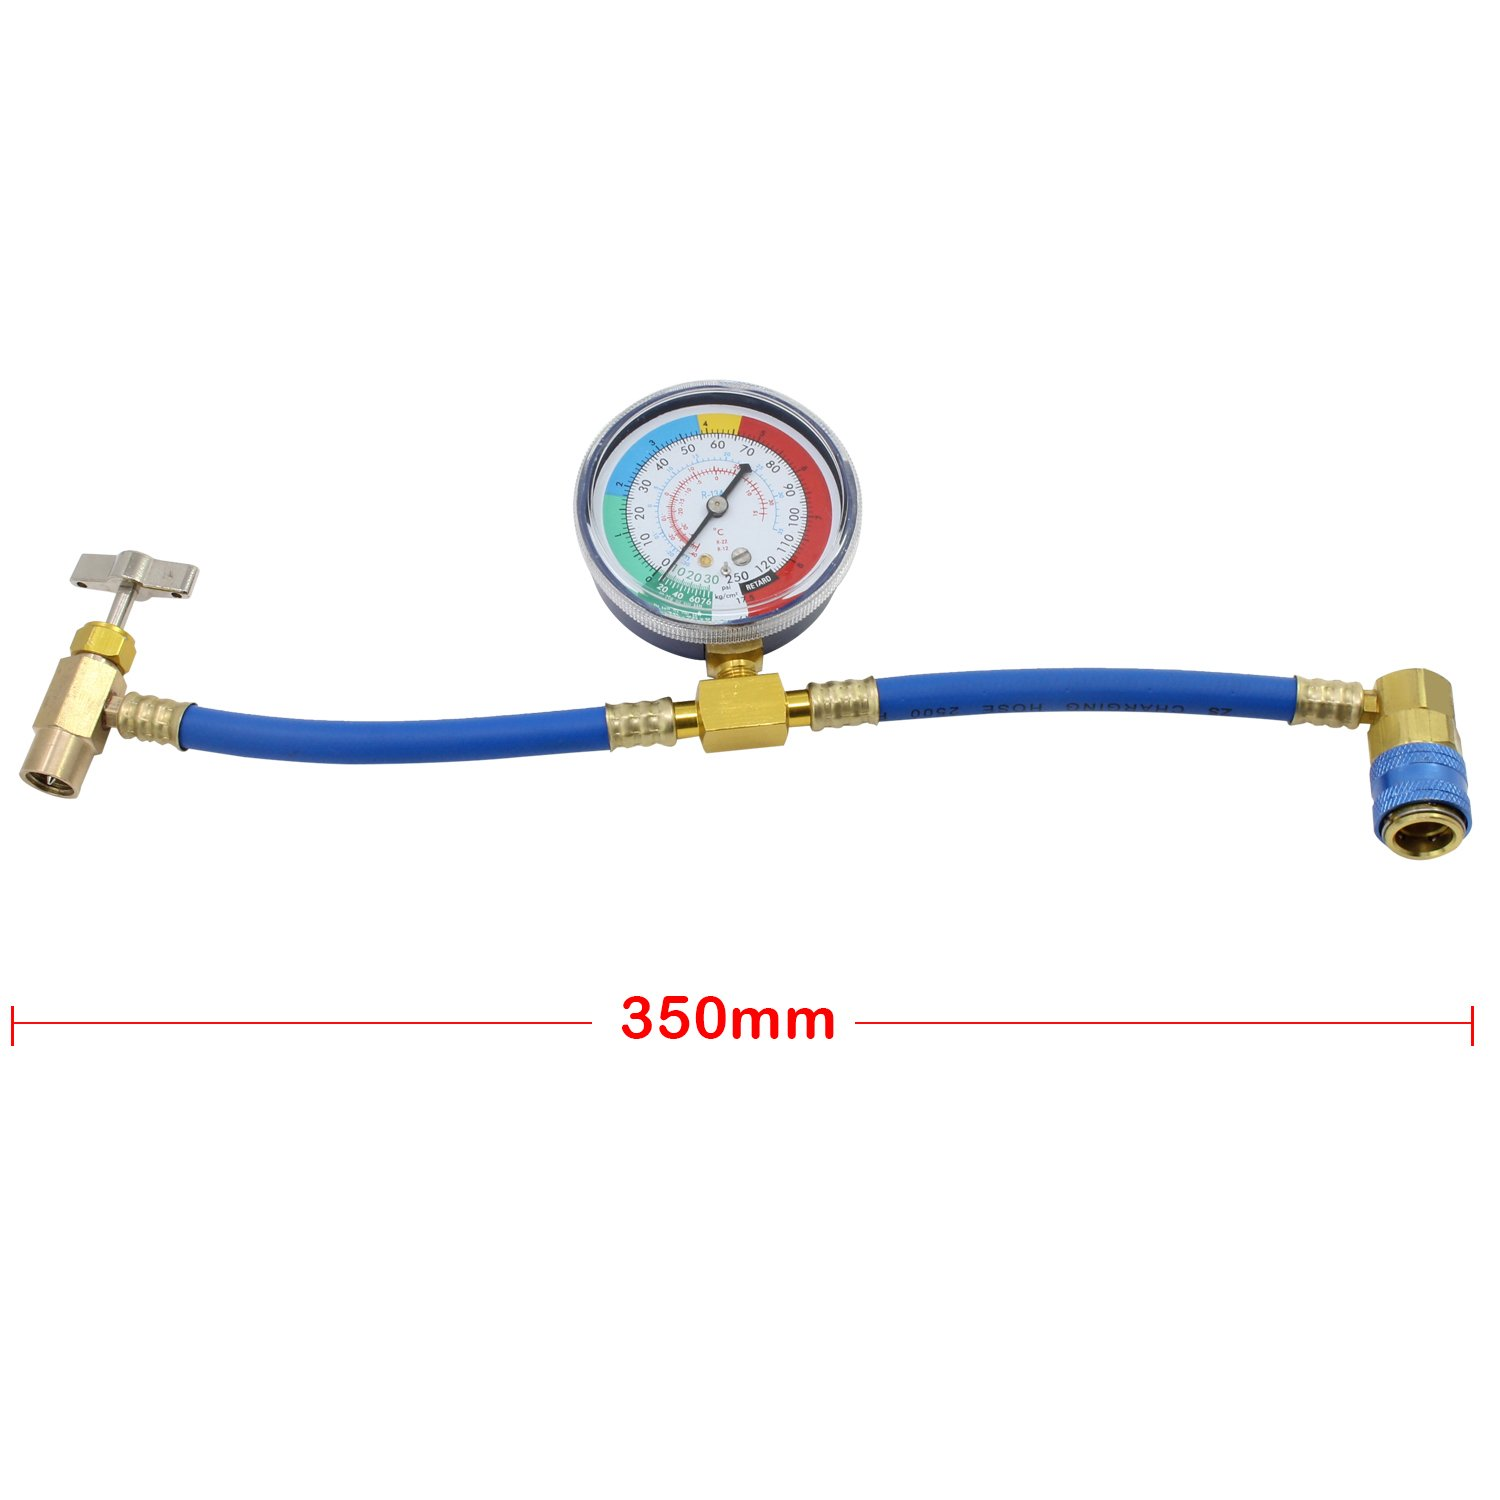 HSeaMall R134A Charge Hose Auto Car Air Conditioning Refrigerant Recharge Measuring Adapter with Guage